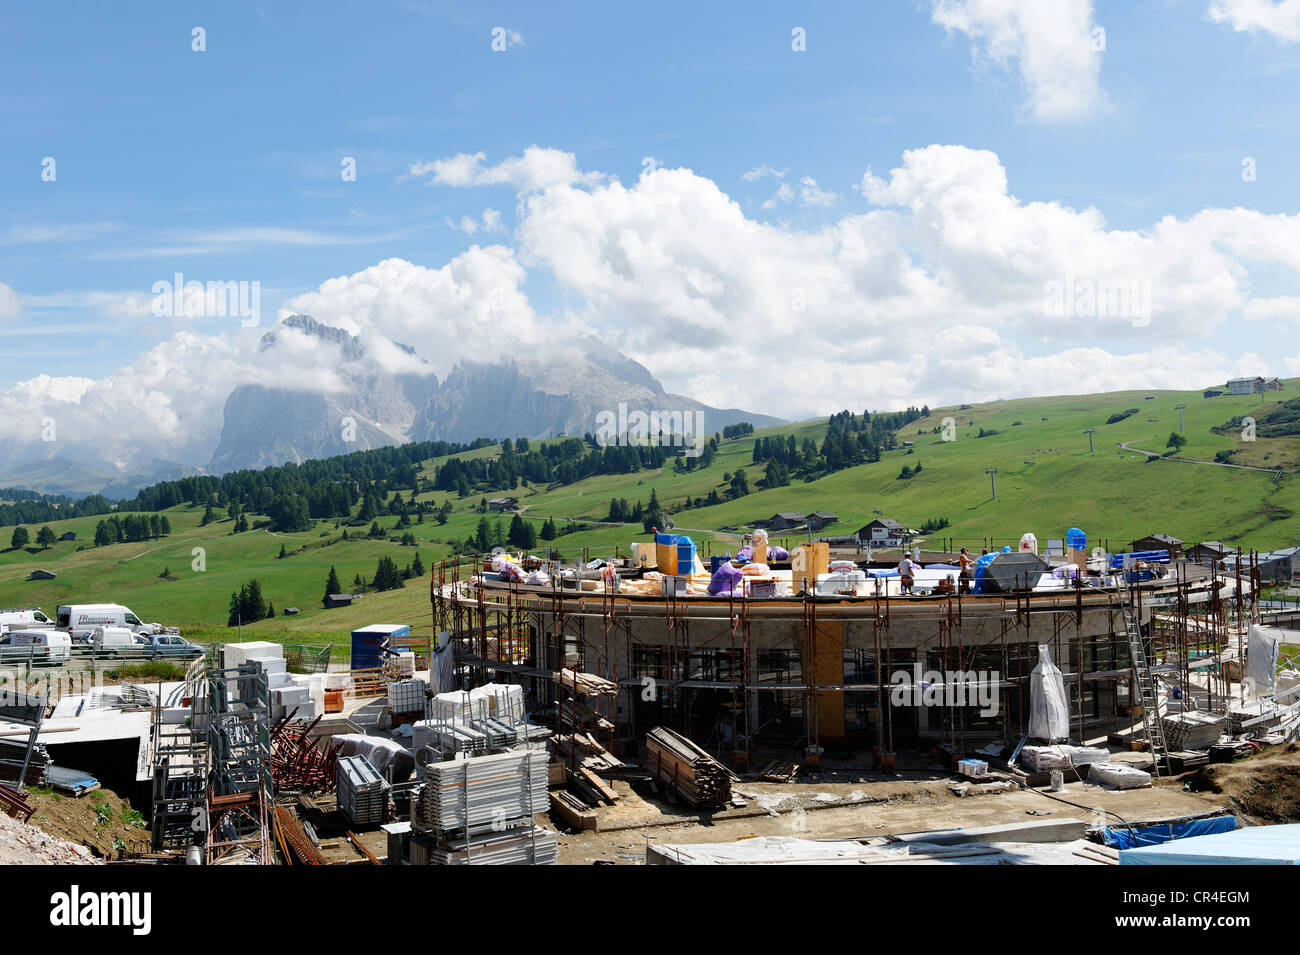 Seiser Alm alpine pastures, construction site at Compatsch, Alto Adige, Italy, Europe - Stock Image